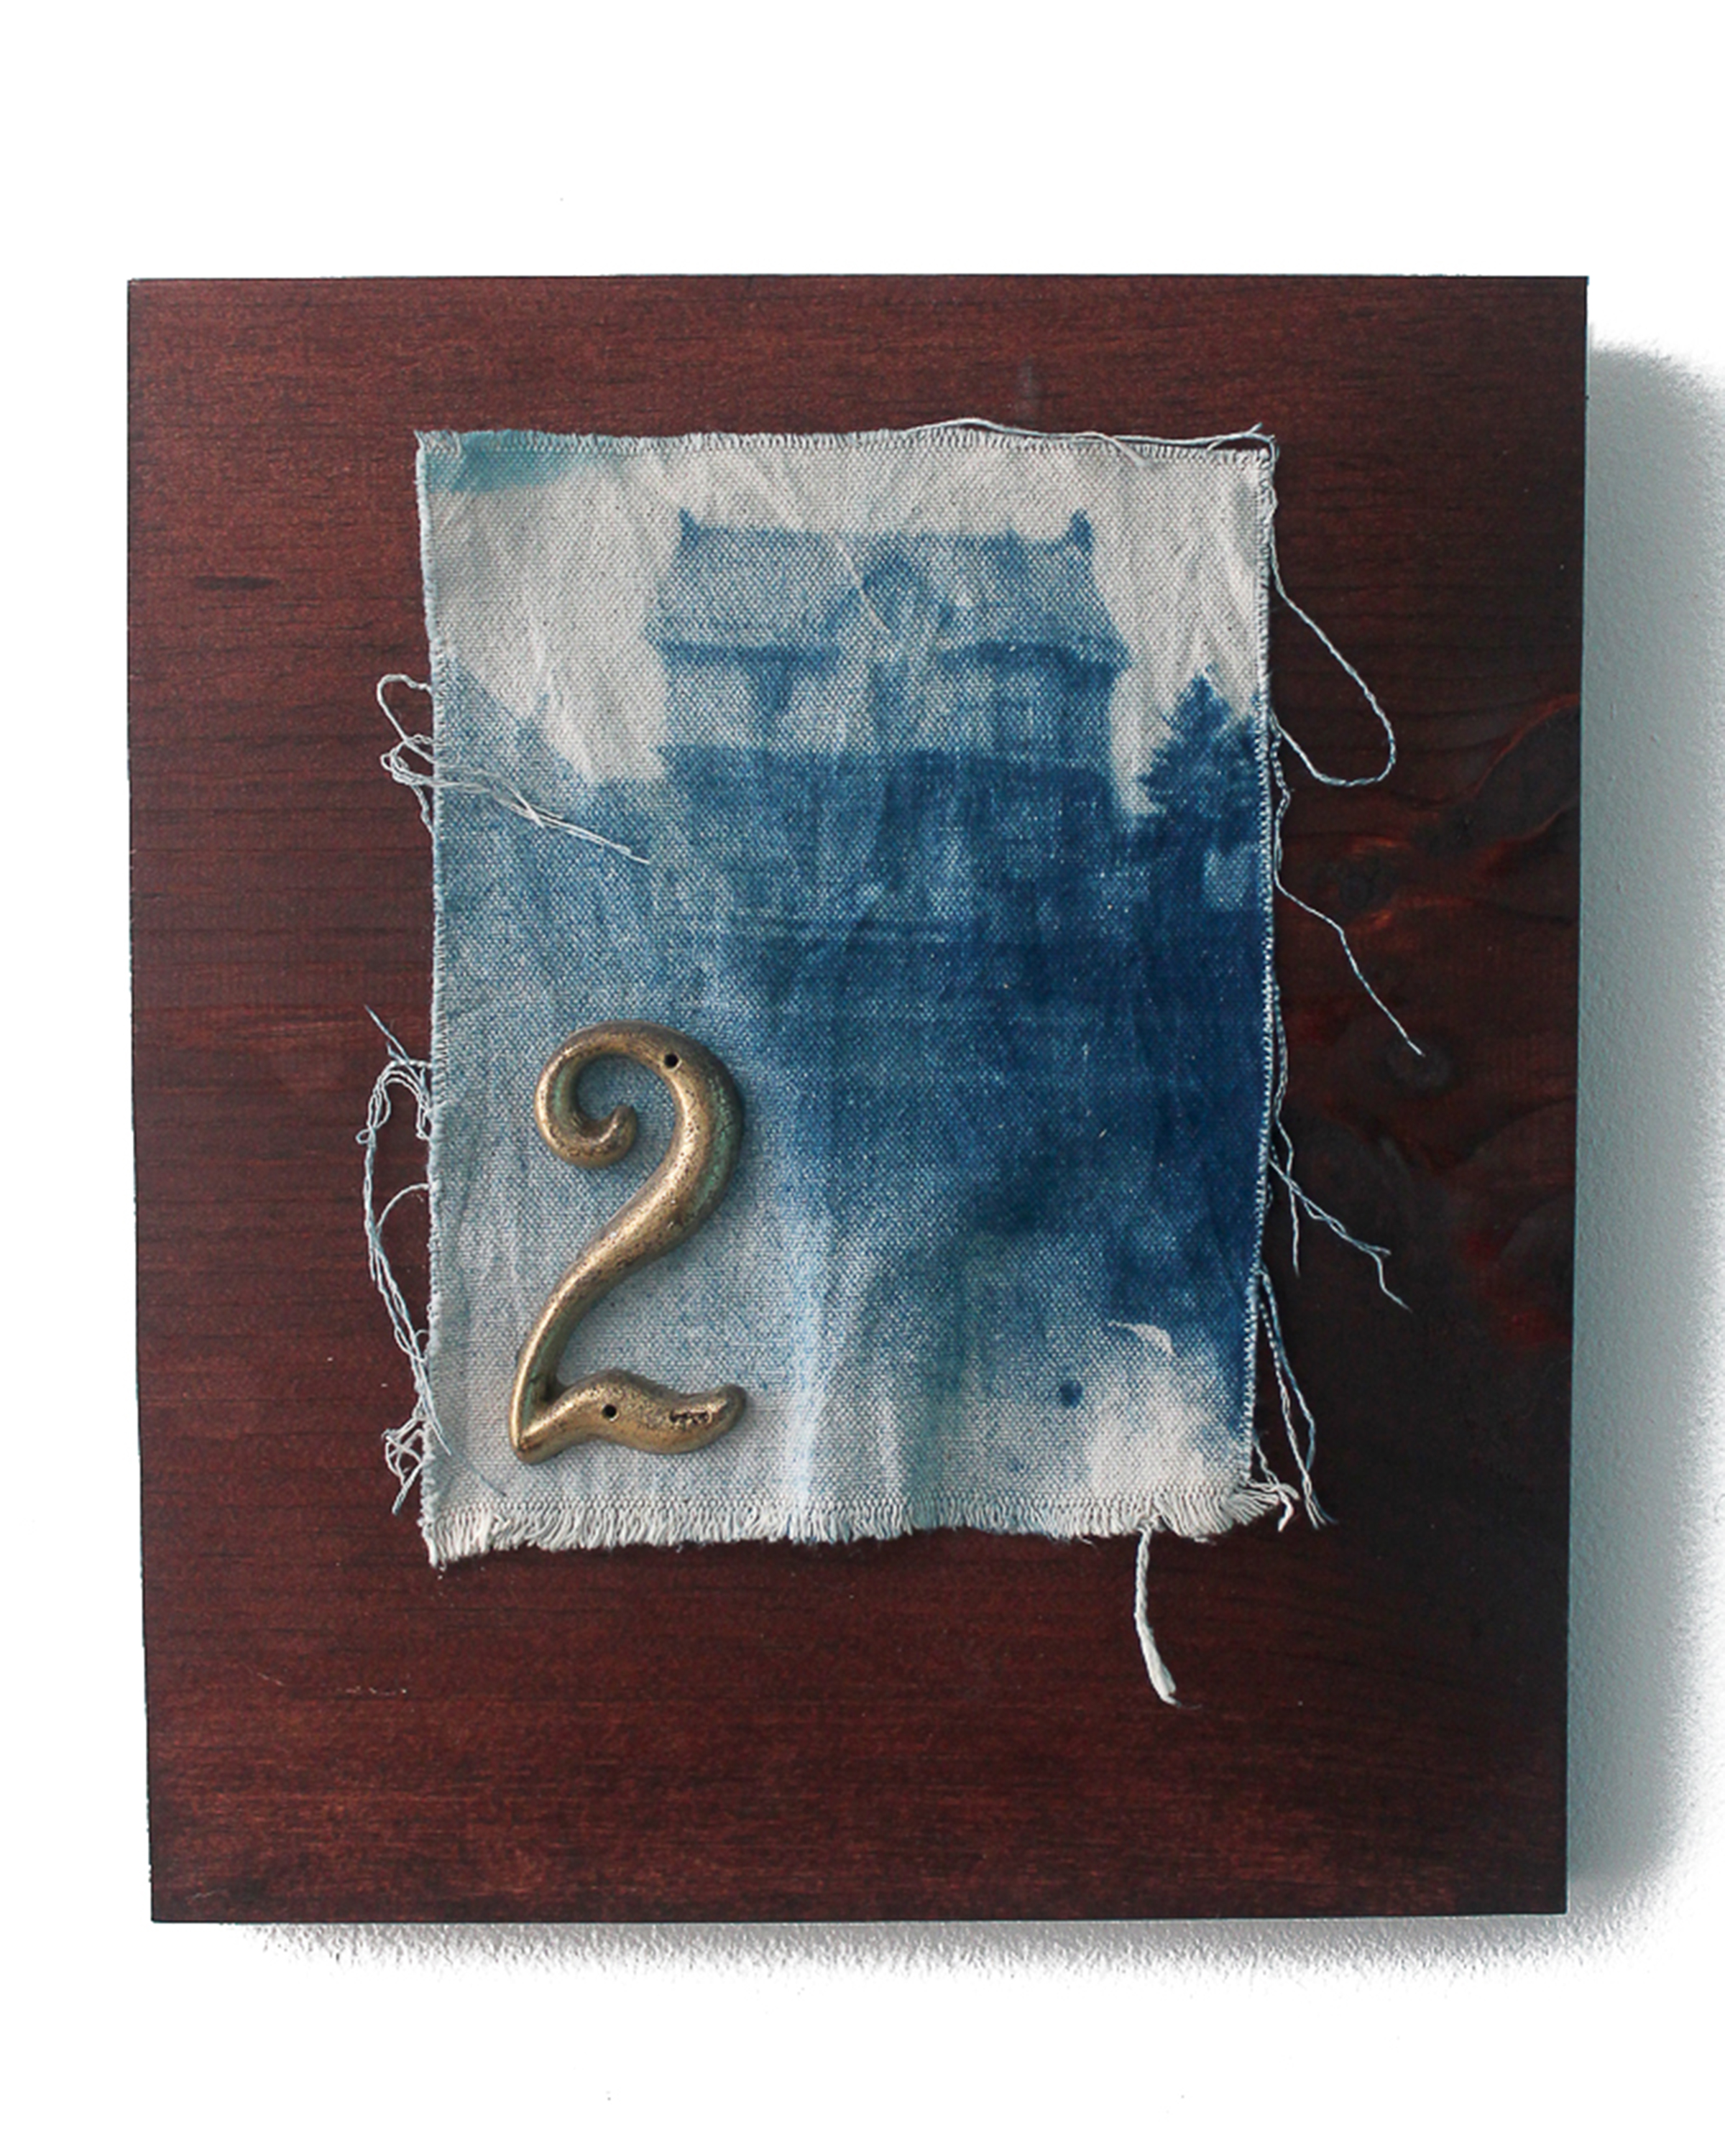 Jeremiah Morris - _The House that Hope Built_ - 8x10 - Cyanotype photographic print on cavas, found brass adornments, wood - 2016 - 325.jpg